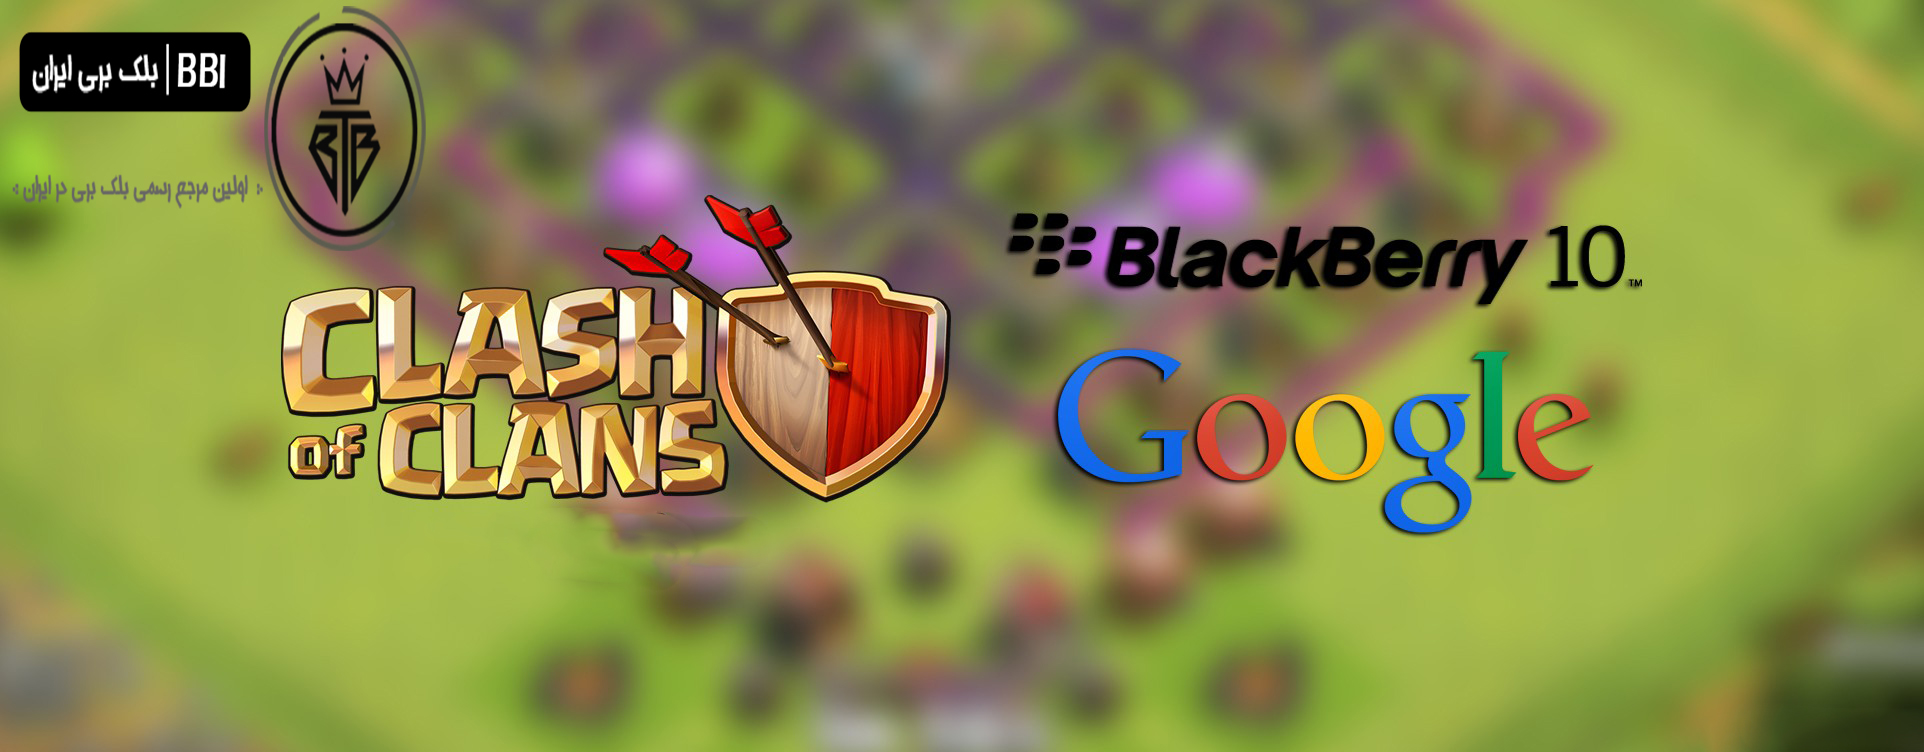 coc-blackberry-google